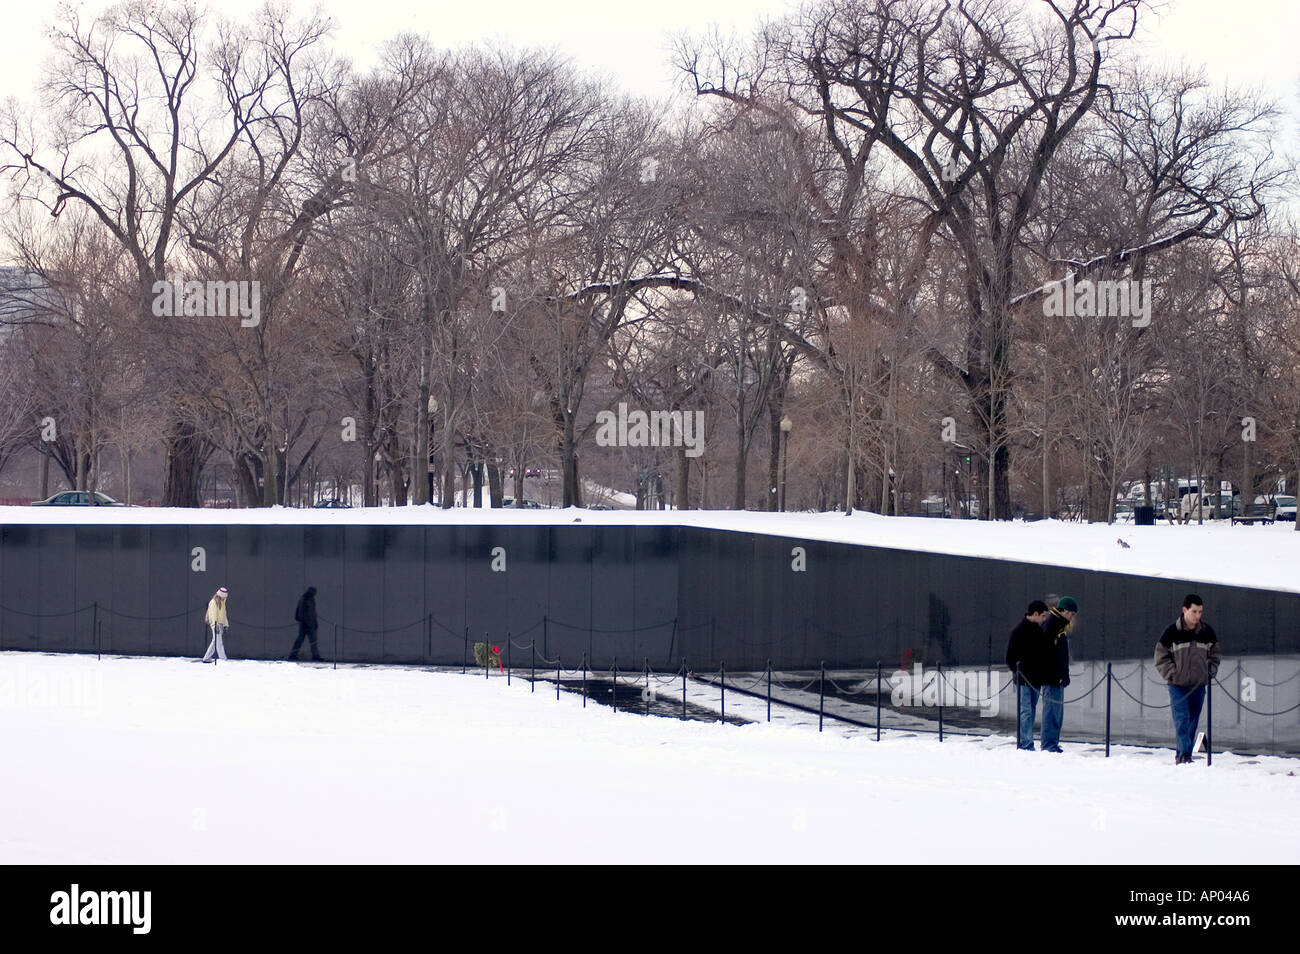 Delightful MAYA YING LIN Designed The VIETNAM VETERANS MEMORIAL Known As THE WALL  WASHINGTON DC USA